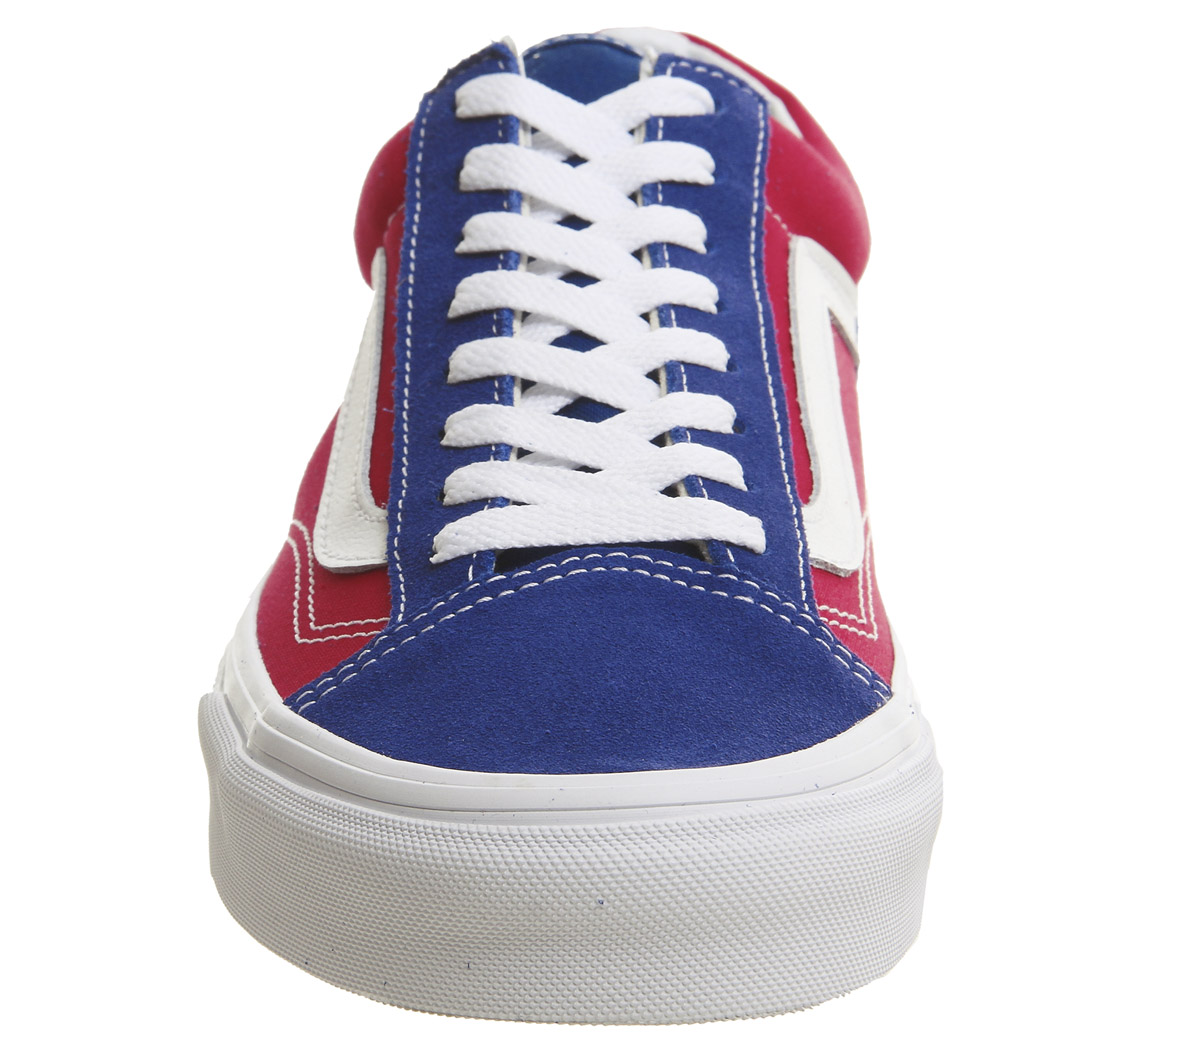 Vans Style Blau 36 Trainers BMX CHECKERBOARD Blau Style ROT Trainers Schuhes f3ca63